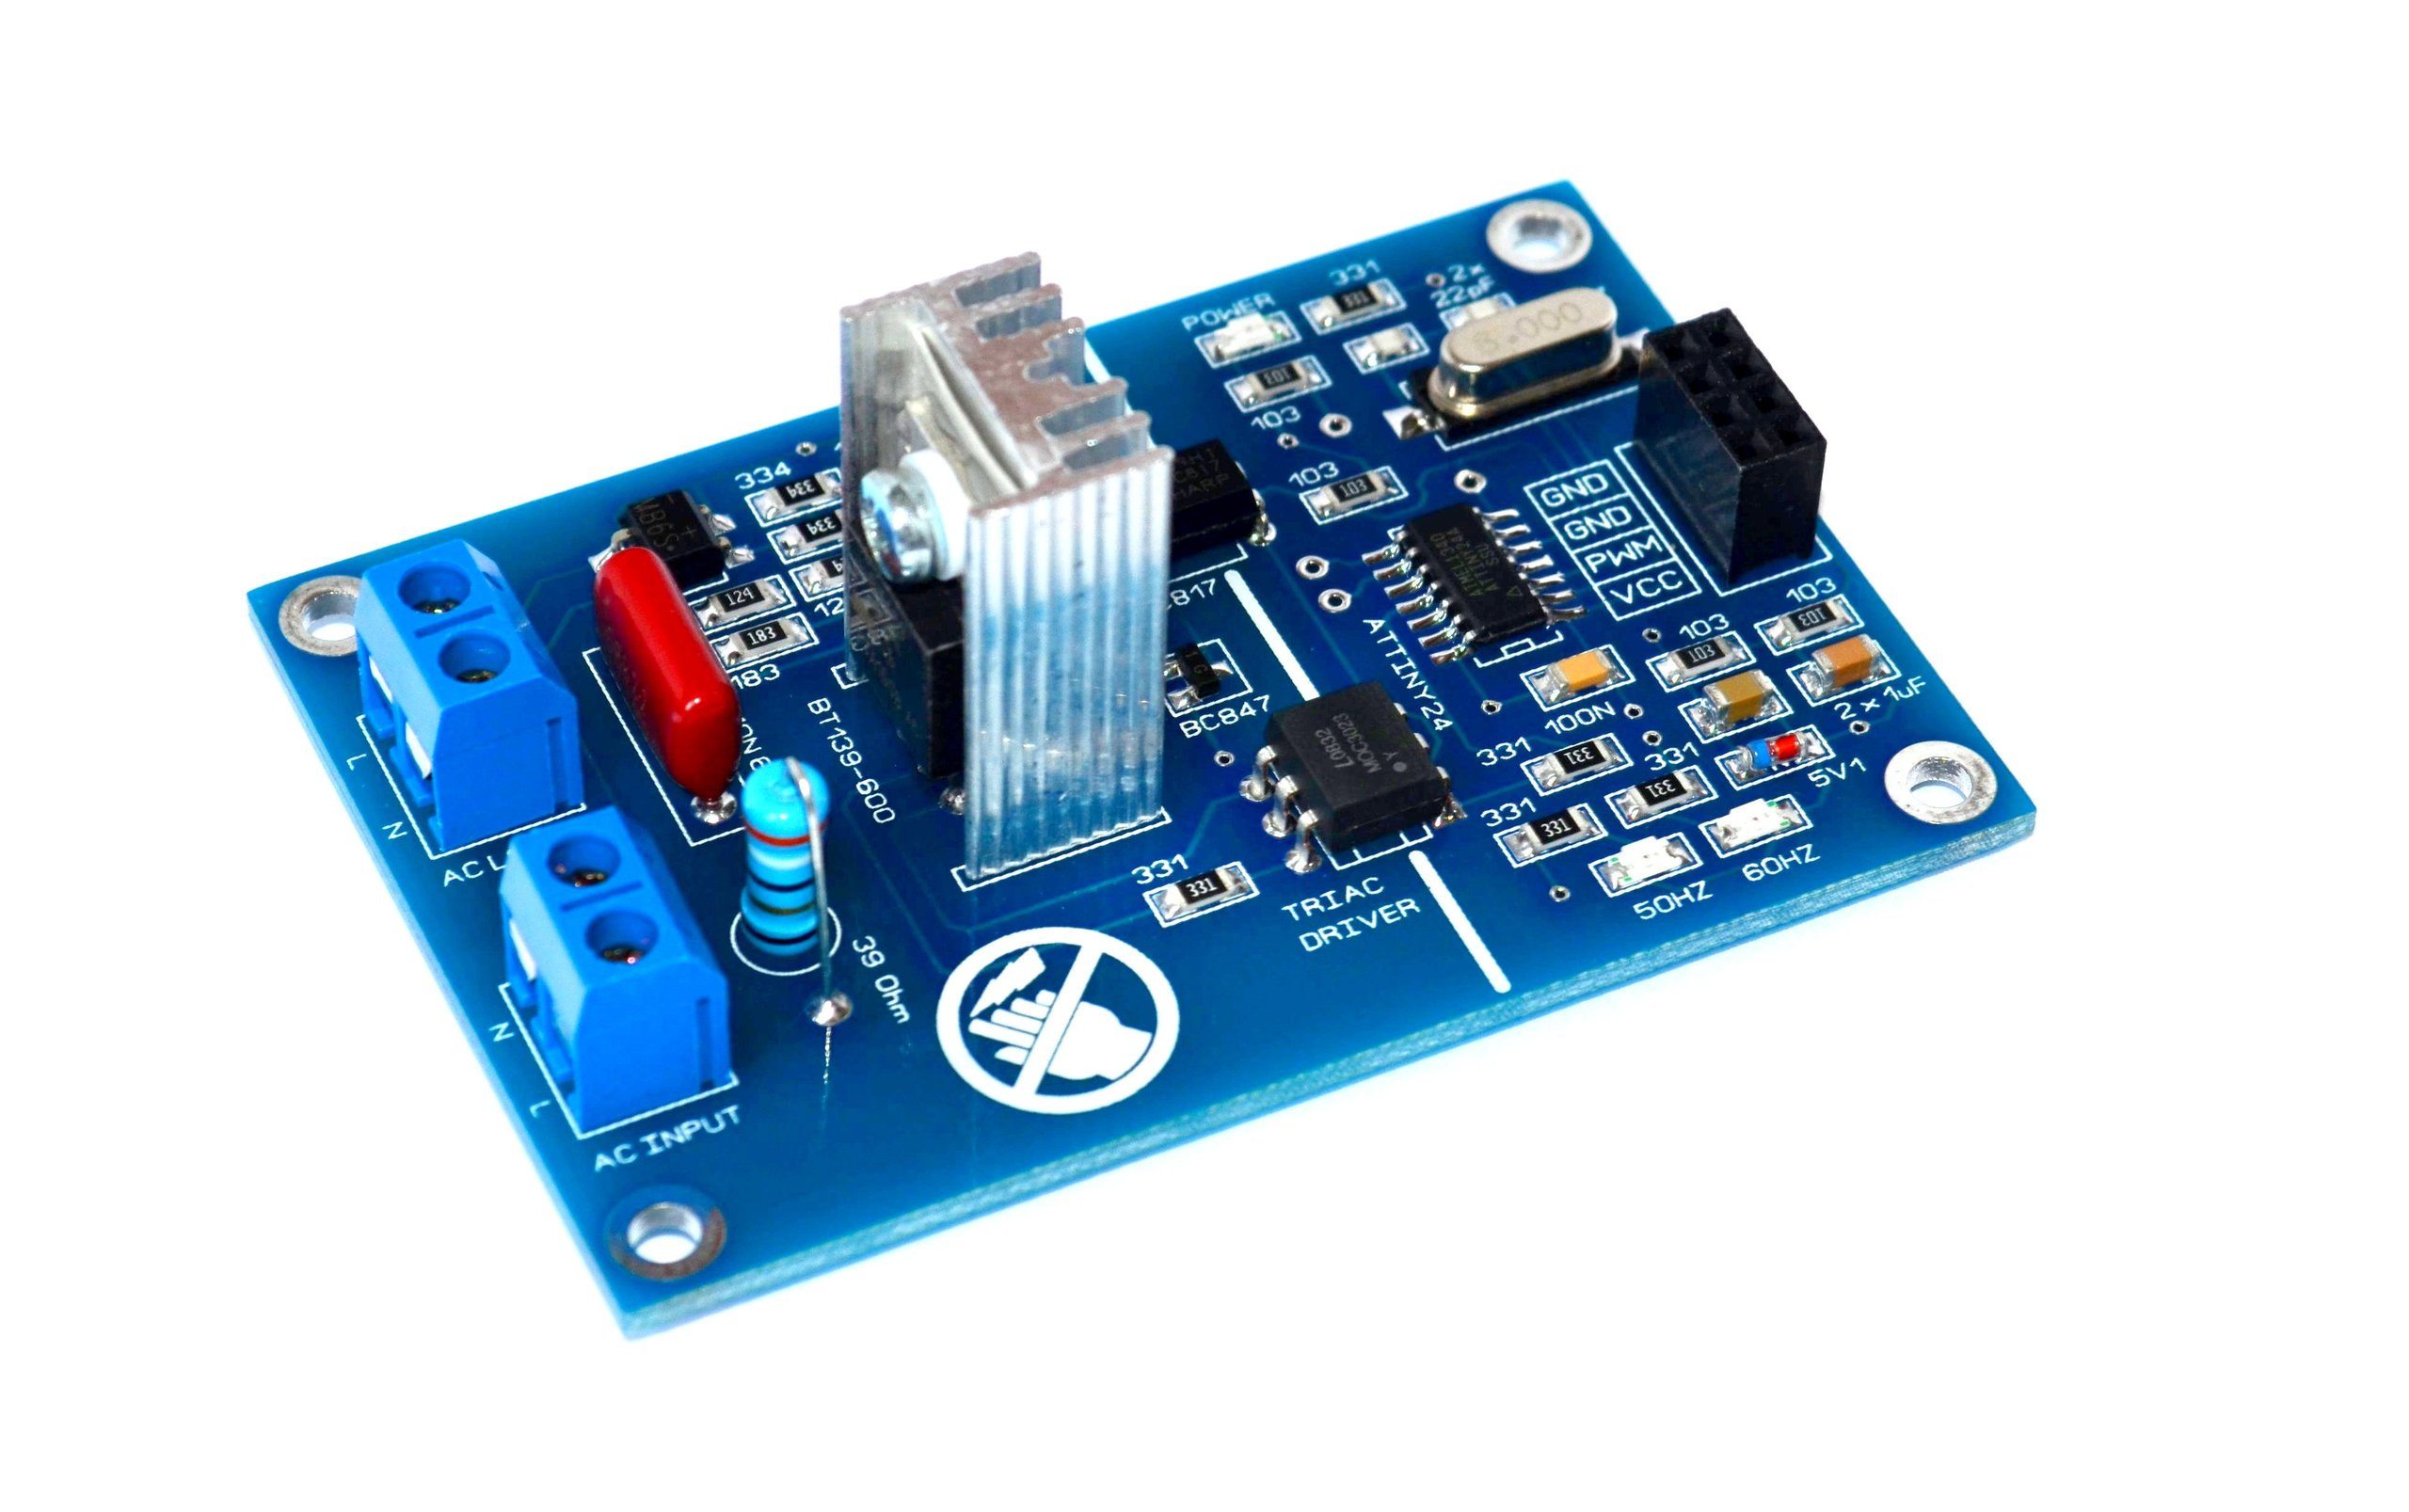 Pwm ac light dimmer module hz from bugrovs on